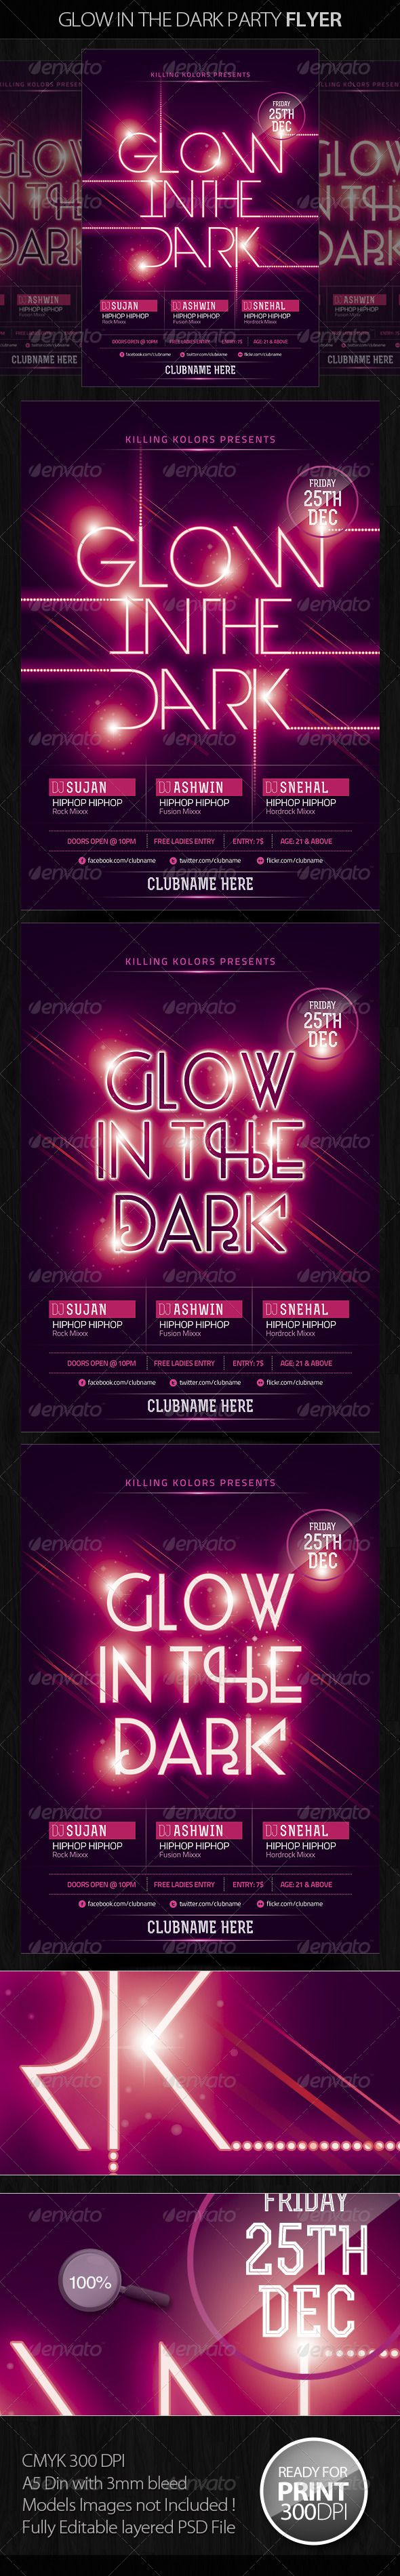 Glow in the Dark Party Flyer - Clubs & Parties Events